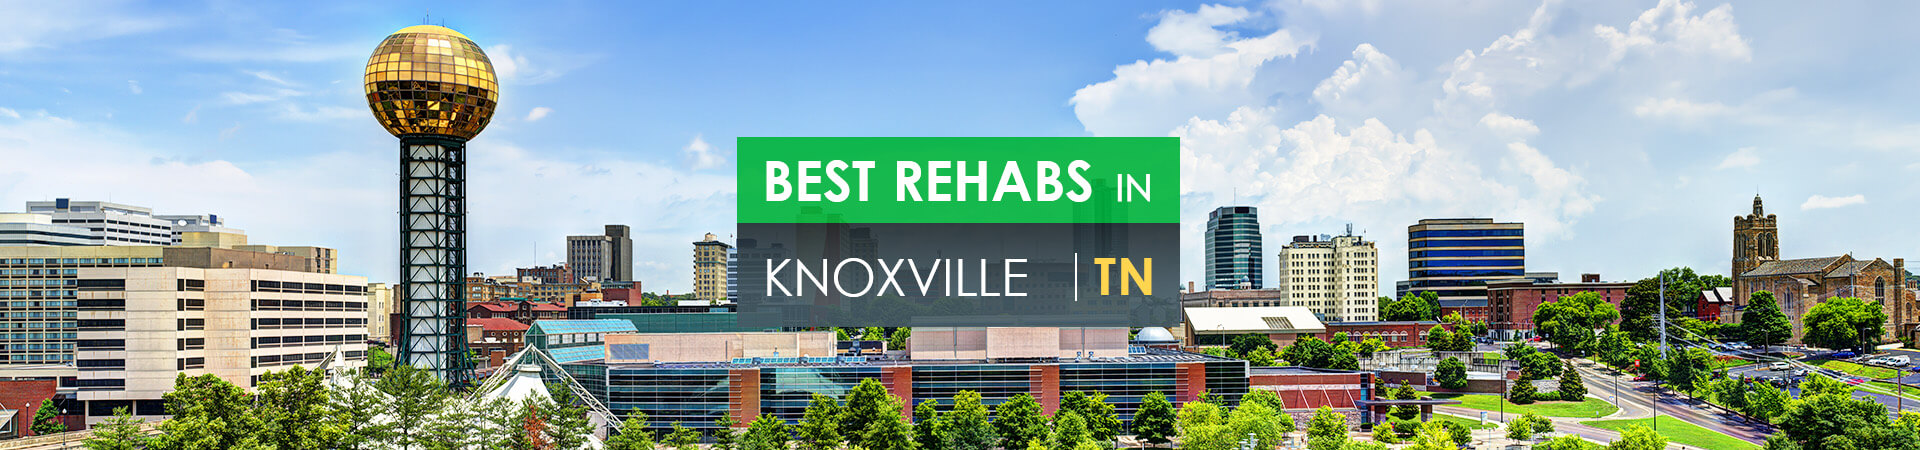 Best rehabs in Knoxville, TN